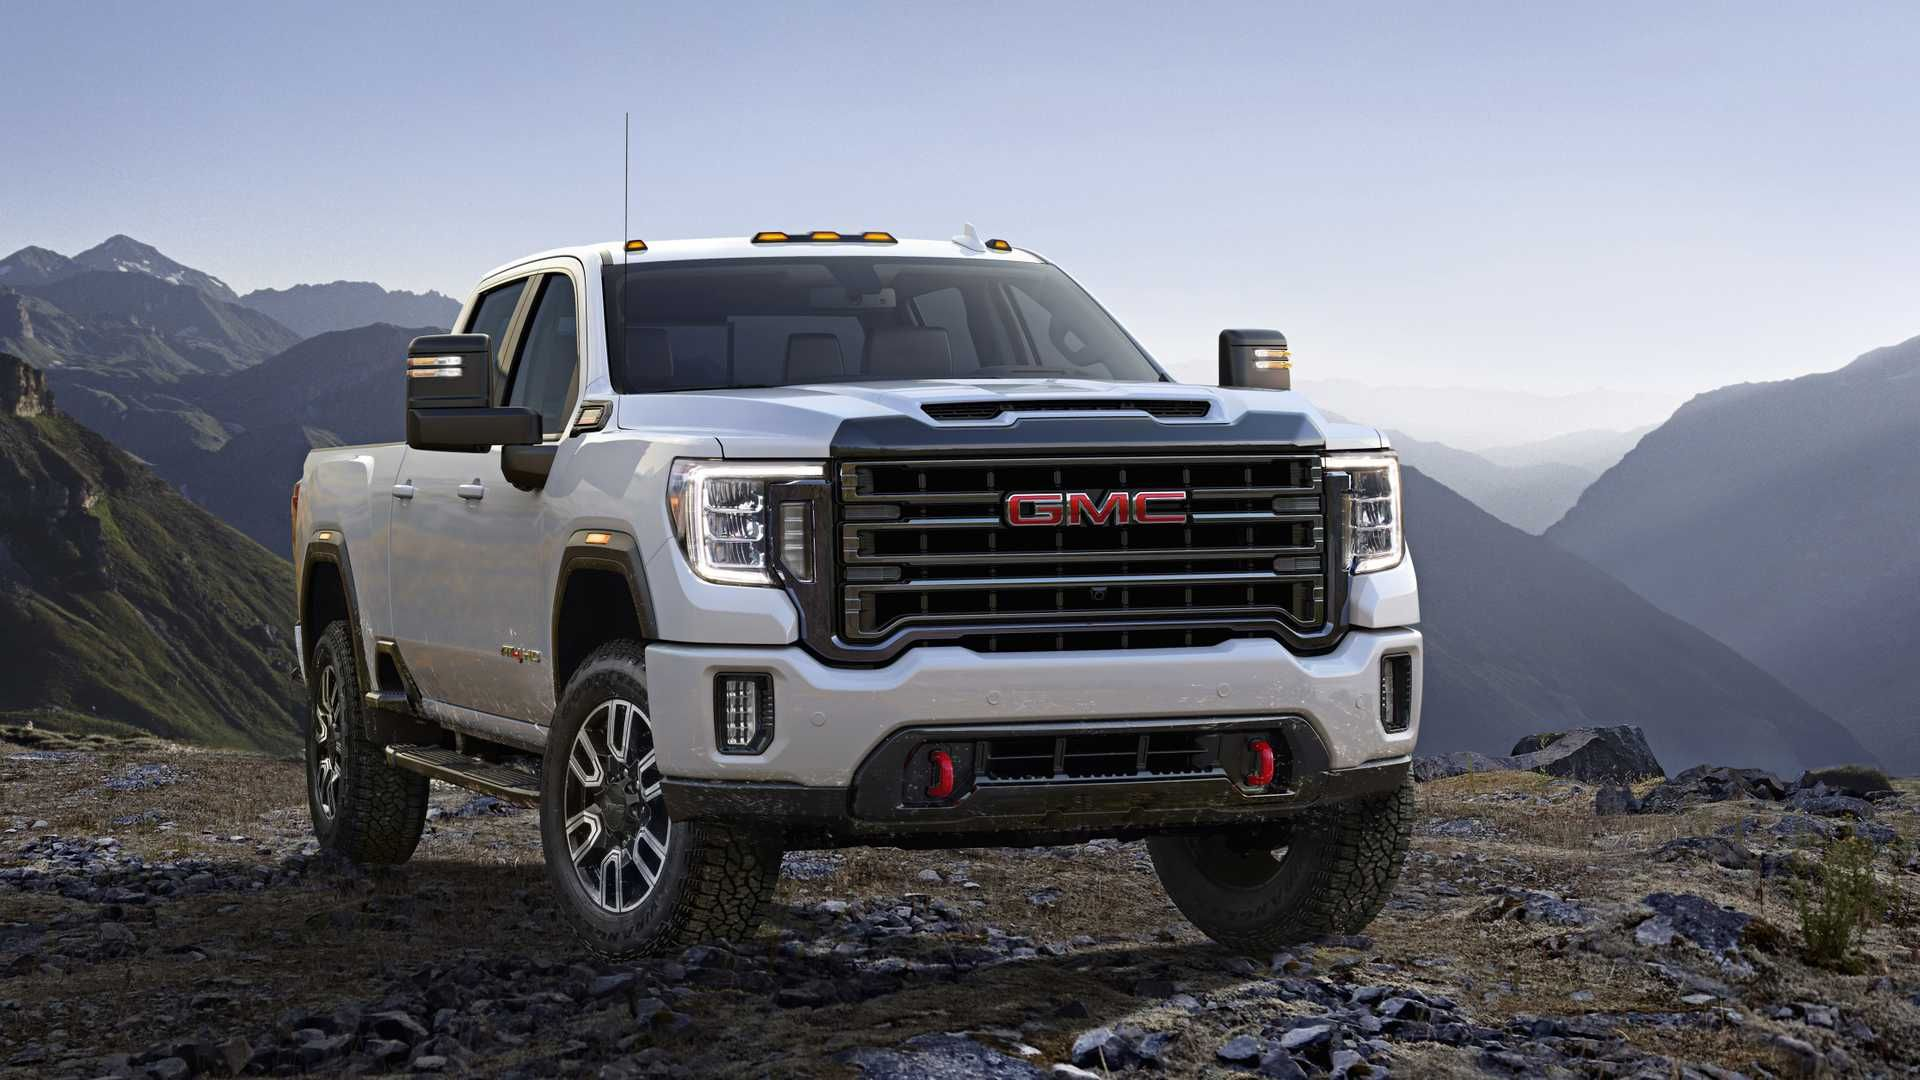 2020 Gmc Sierra Hd 2500 At4 Crew Cab Gmc 2500 Gmc Denali Gmc